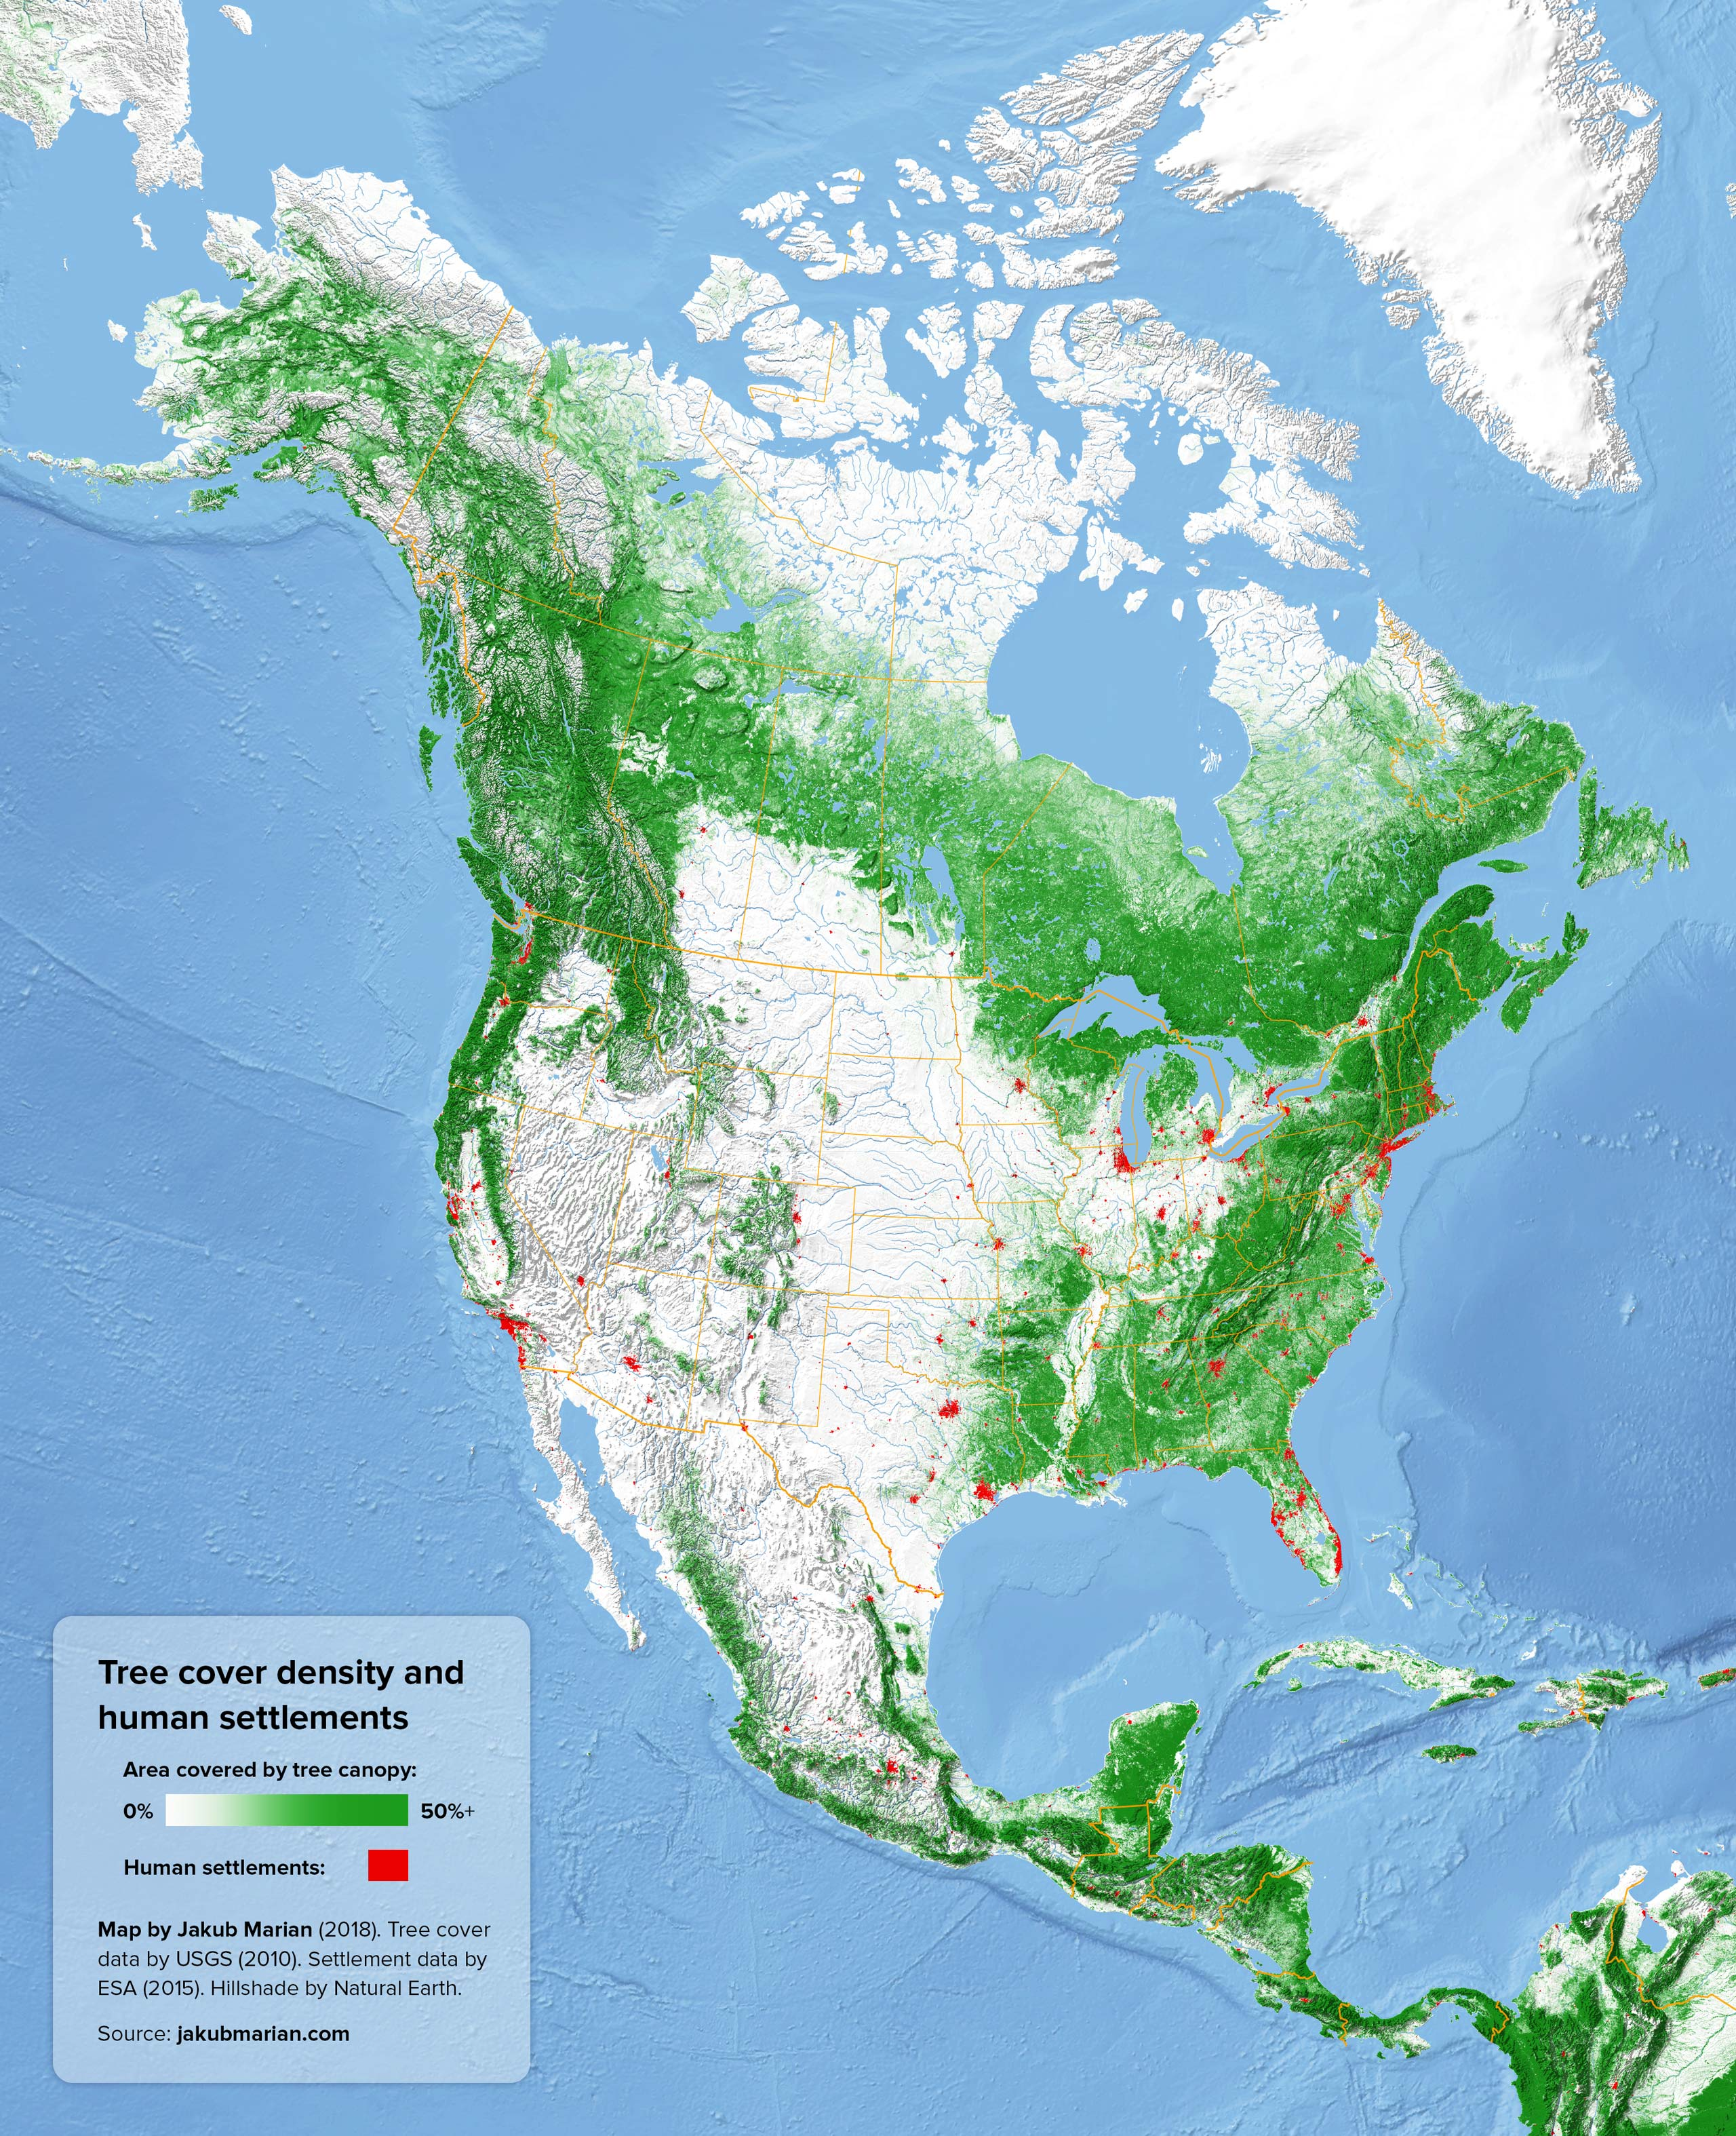 Tree cover density and human settlements of North America